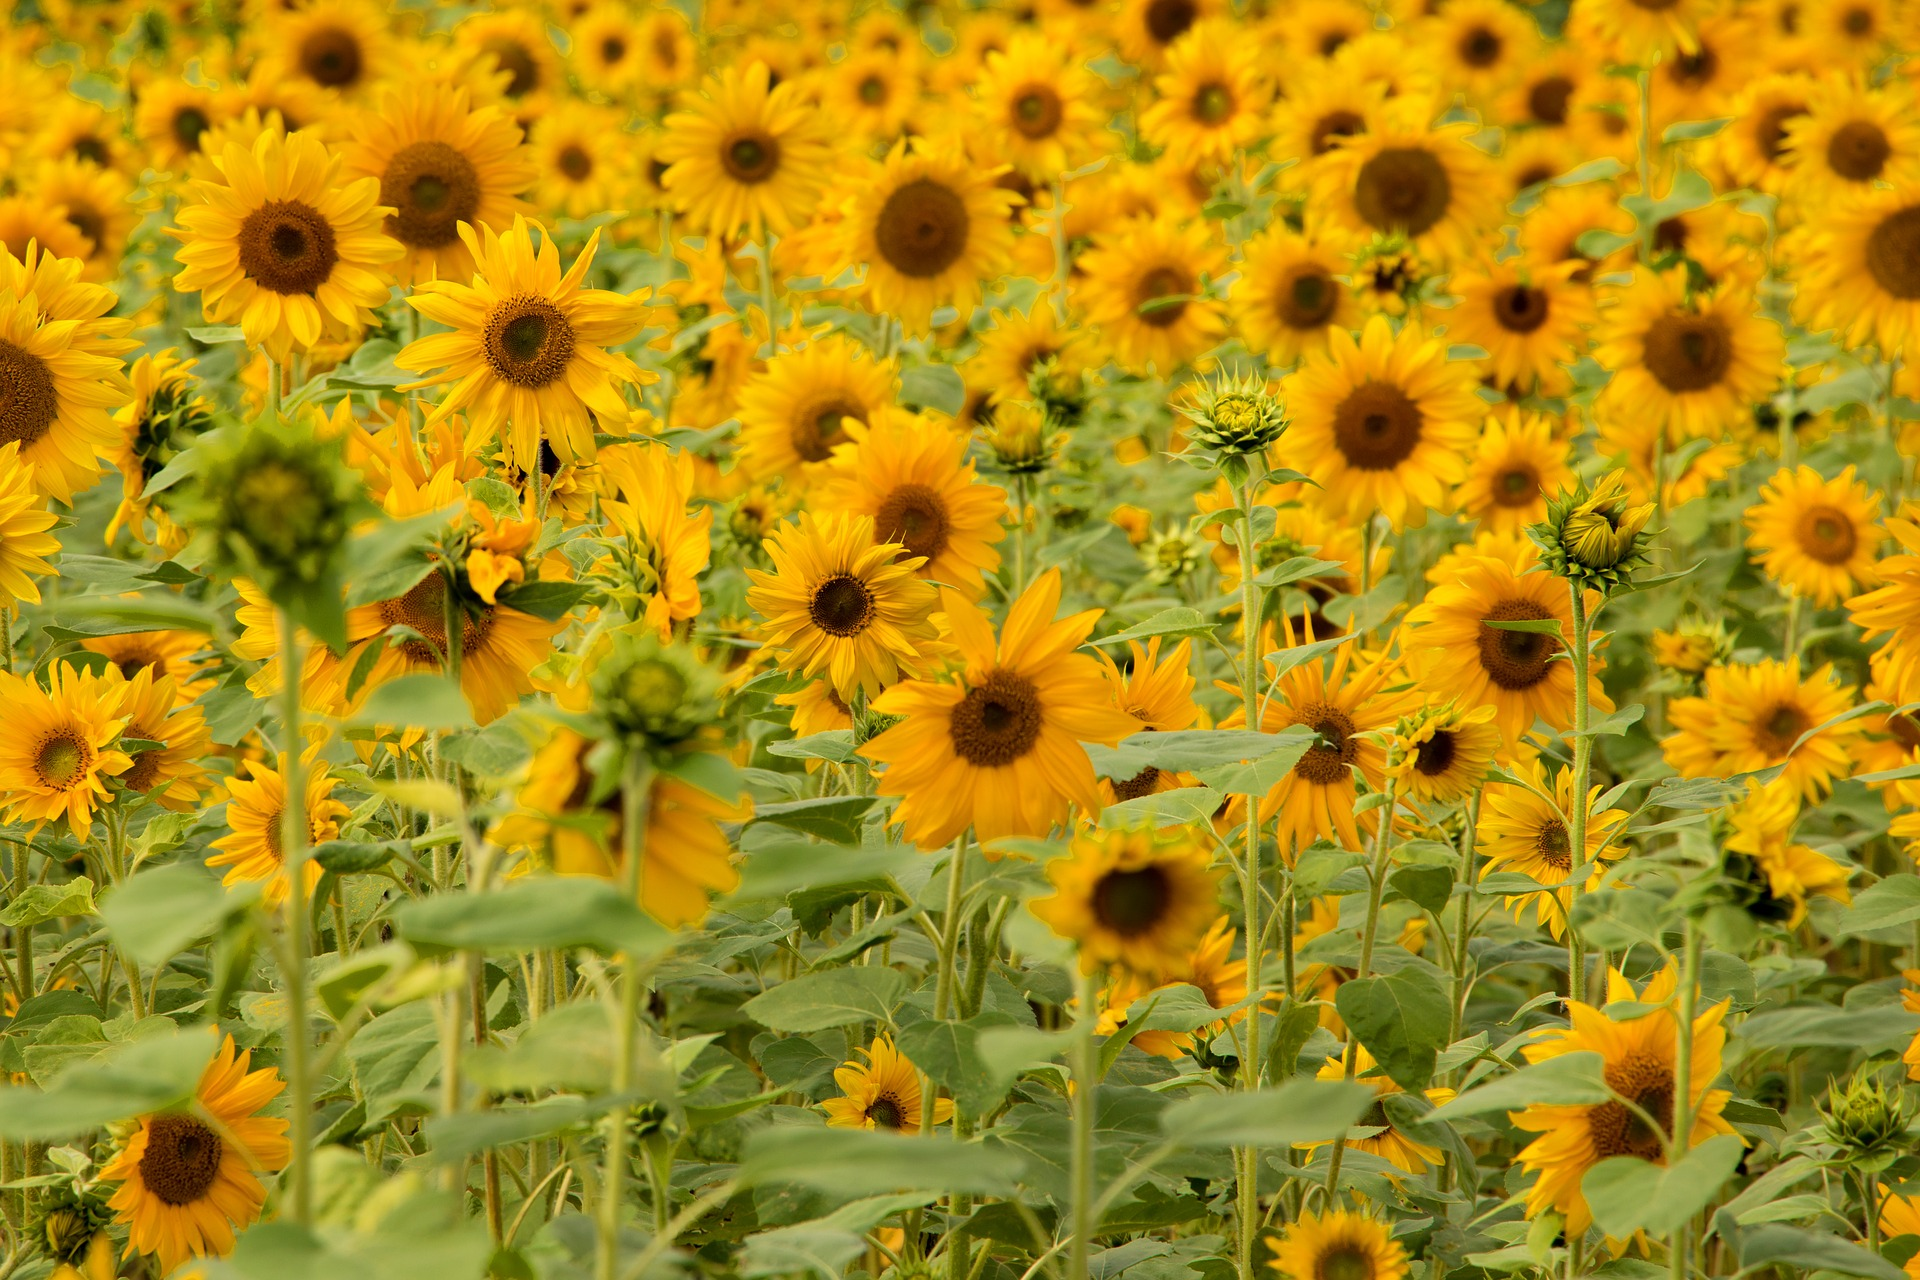 18 Stunning Types of Sunflowers to Add to Your Summer Garden